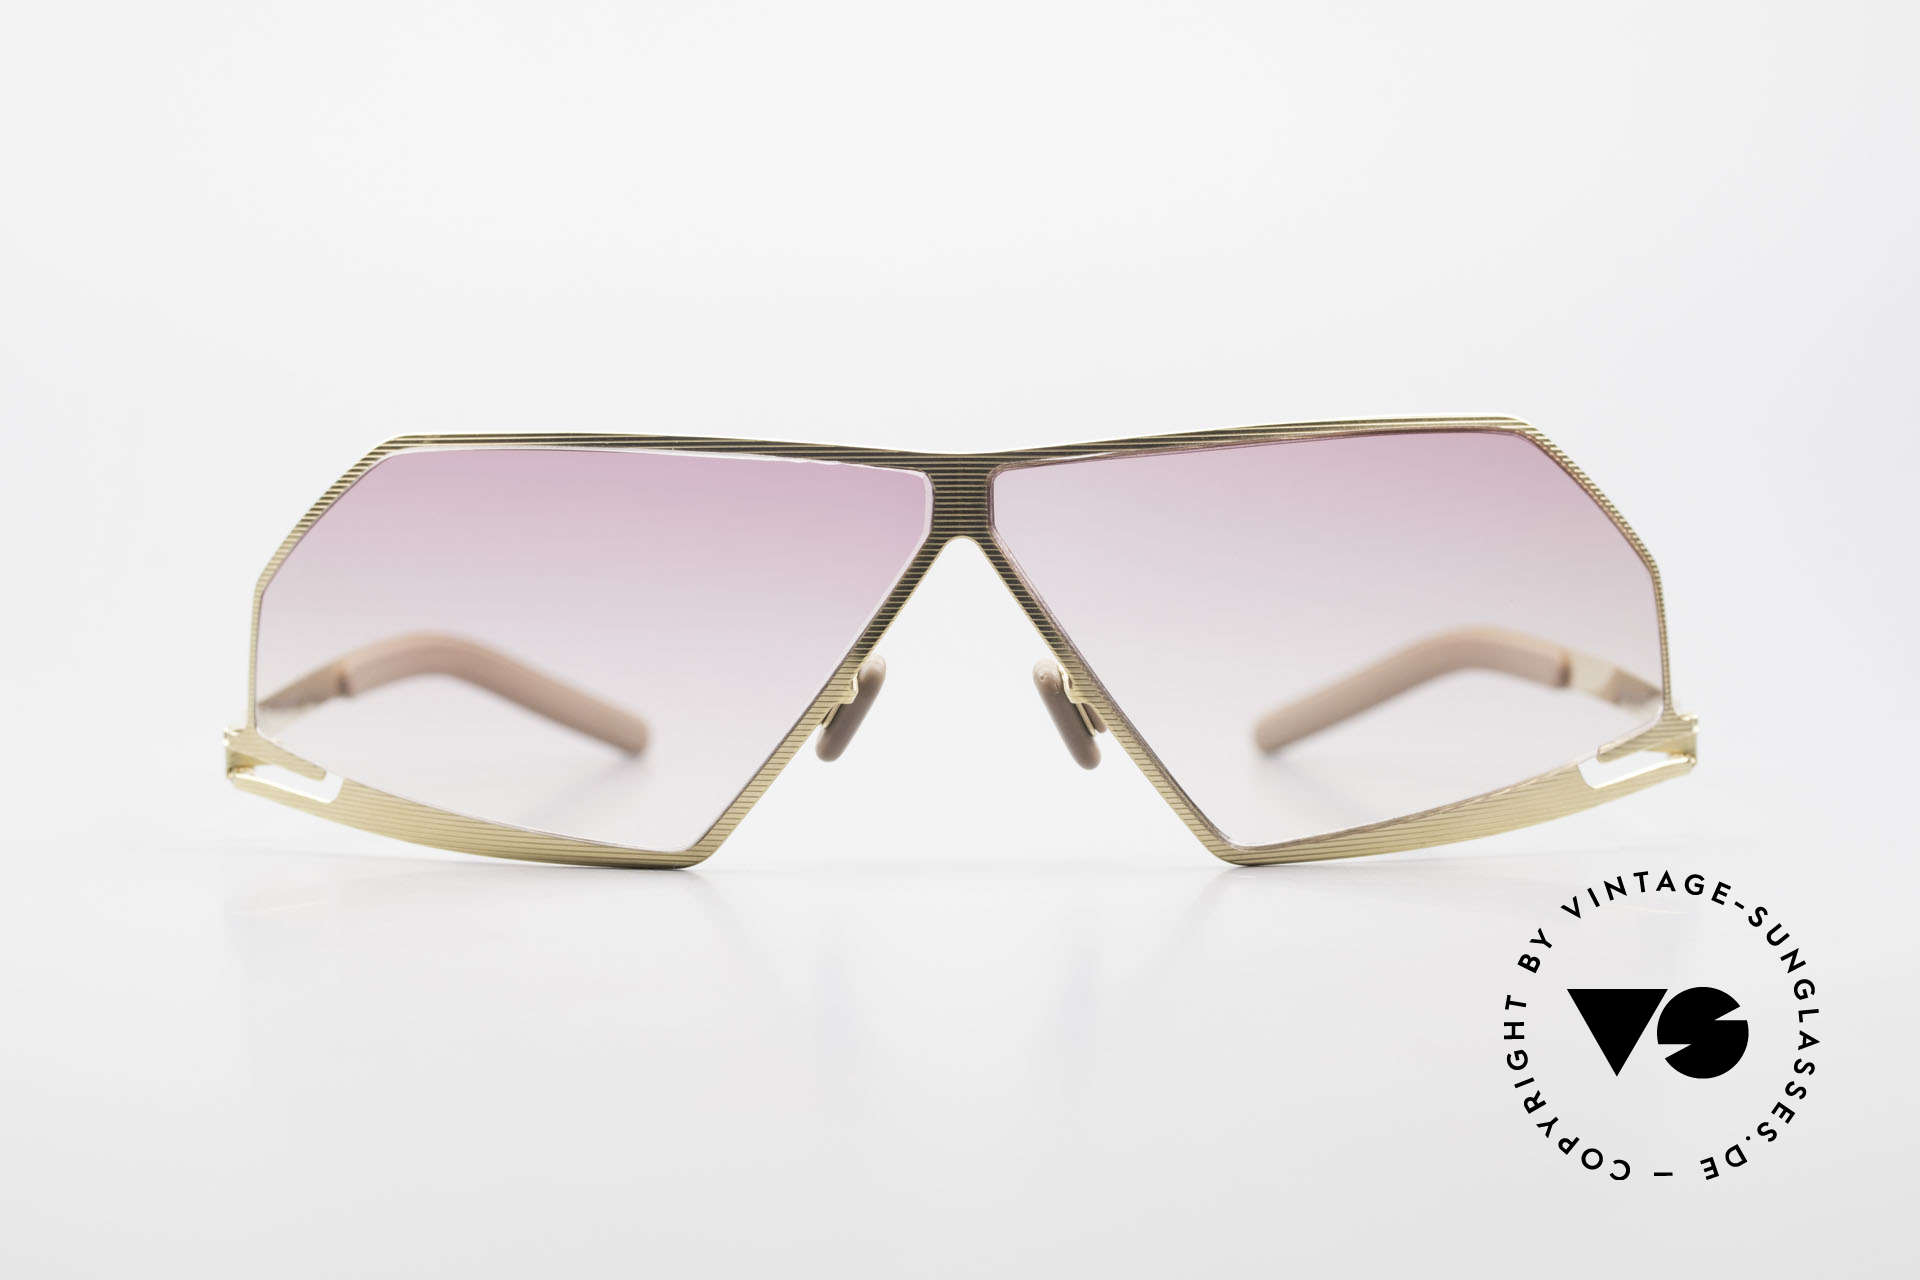 Mykita Chuck Futuristic Designer Sunglasses, MYKITA: the youngest brand in our vintage collection, Made for Men and Women